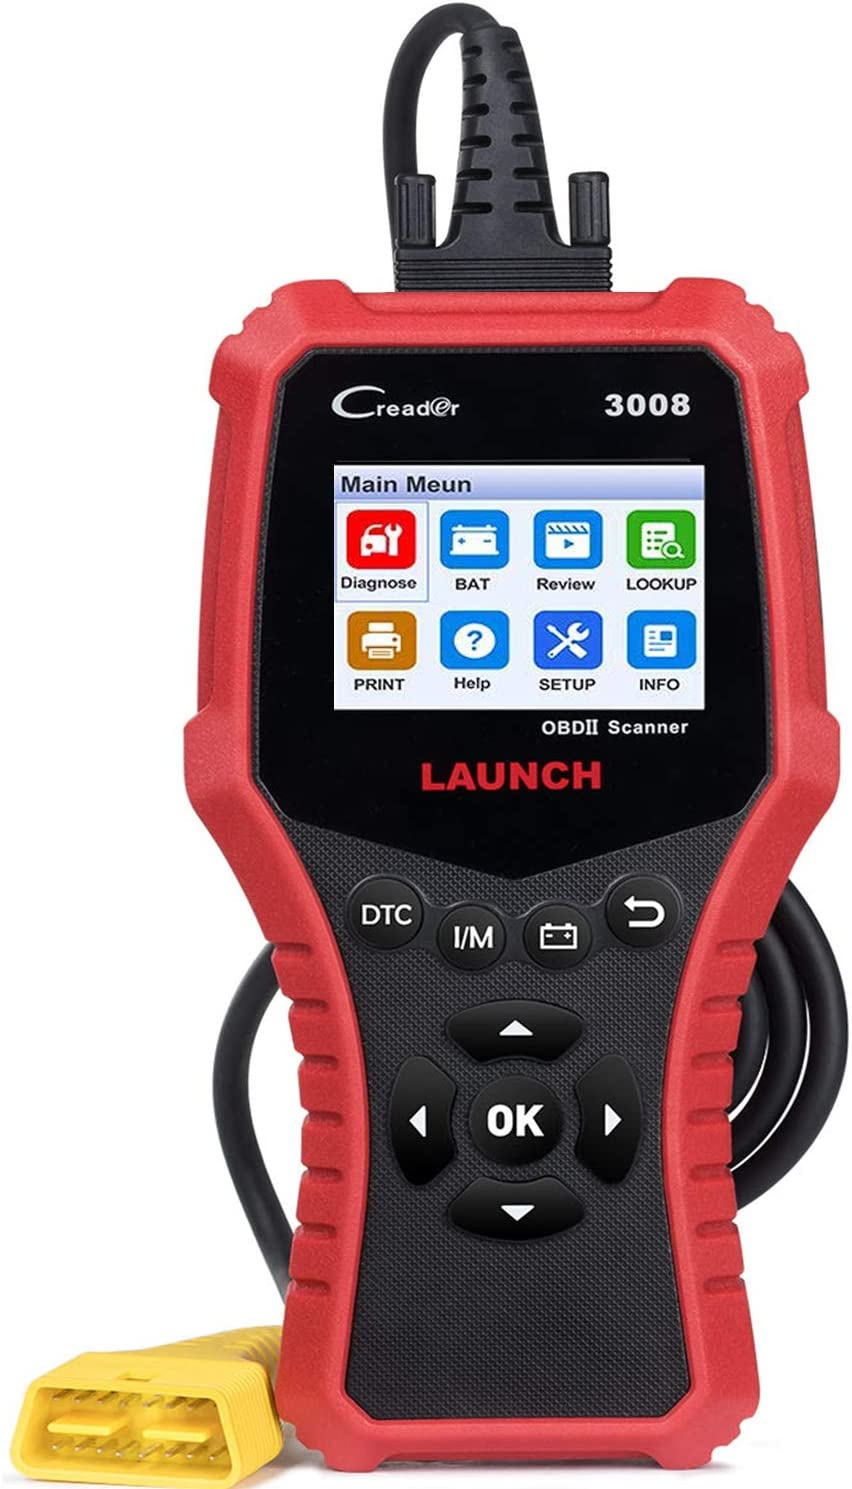 LAUNCH OBD2 Code Reader CR3008 for Full Obd2 Mode Scanner Print Diagnostic Report Check Engine Live Data I/M Readiness Smog Misfire Battery-Free Update